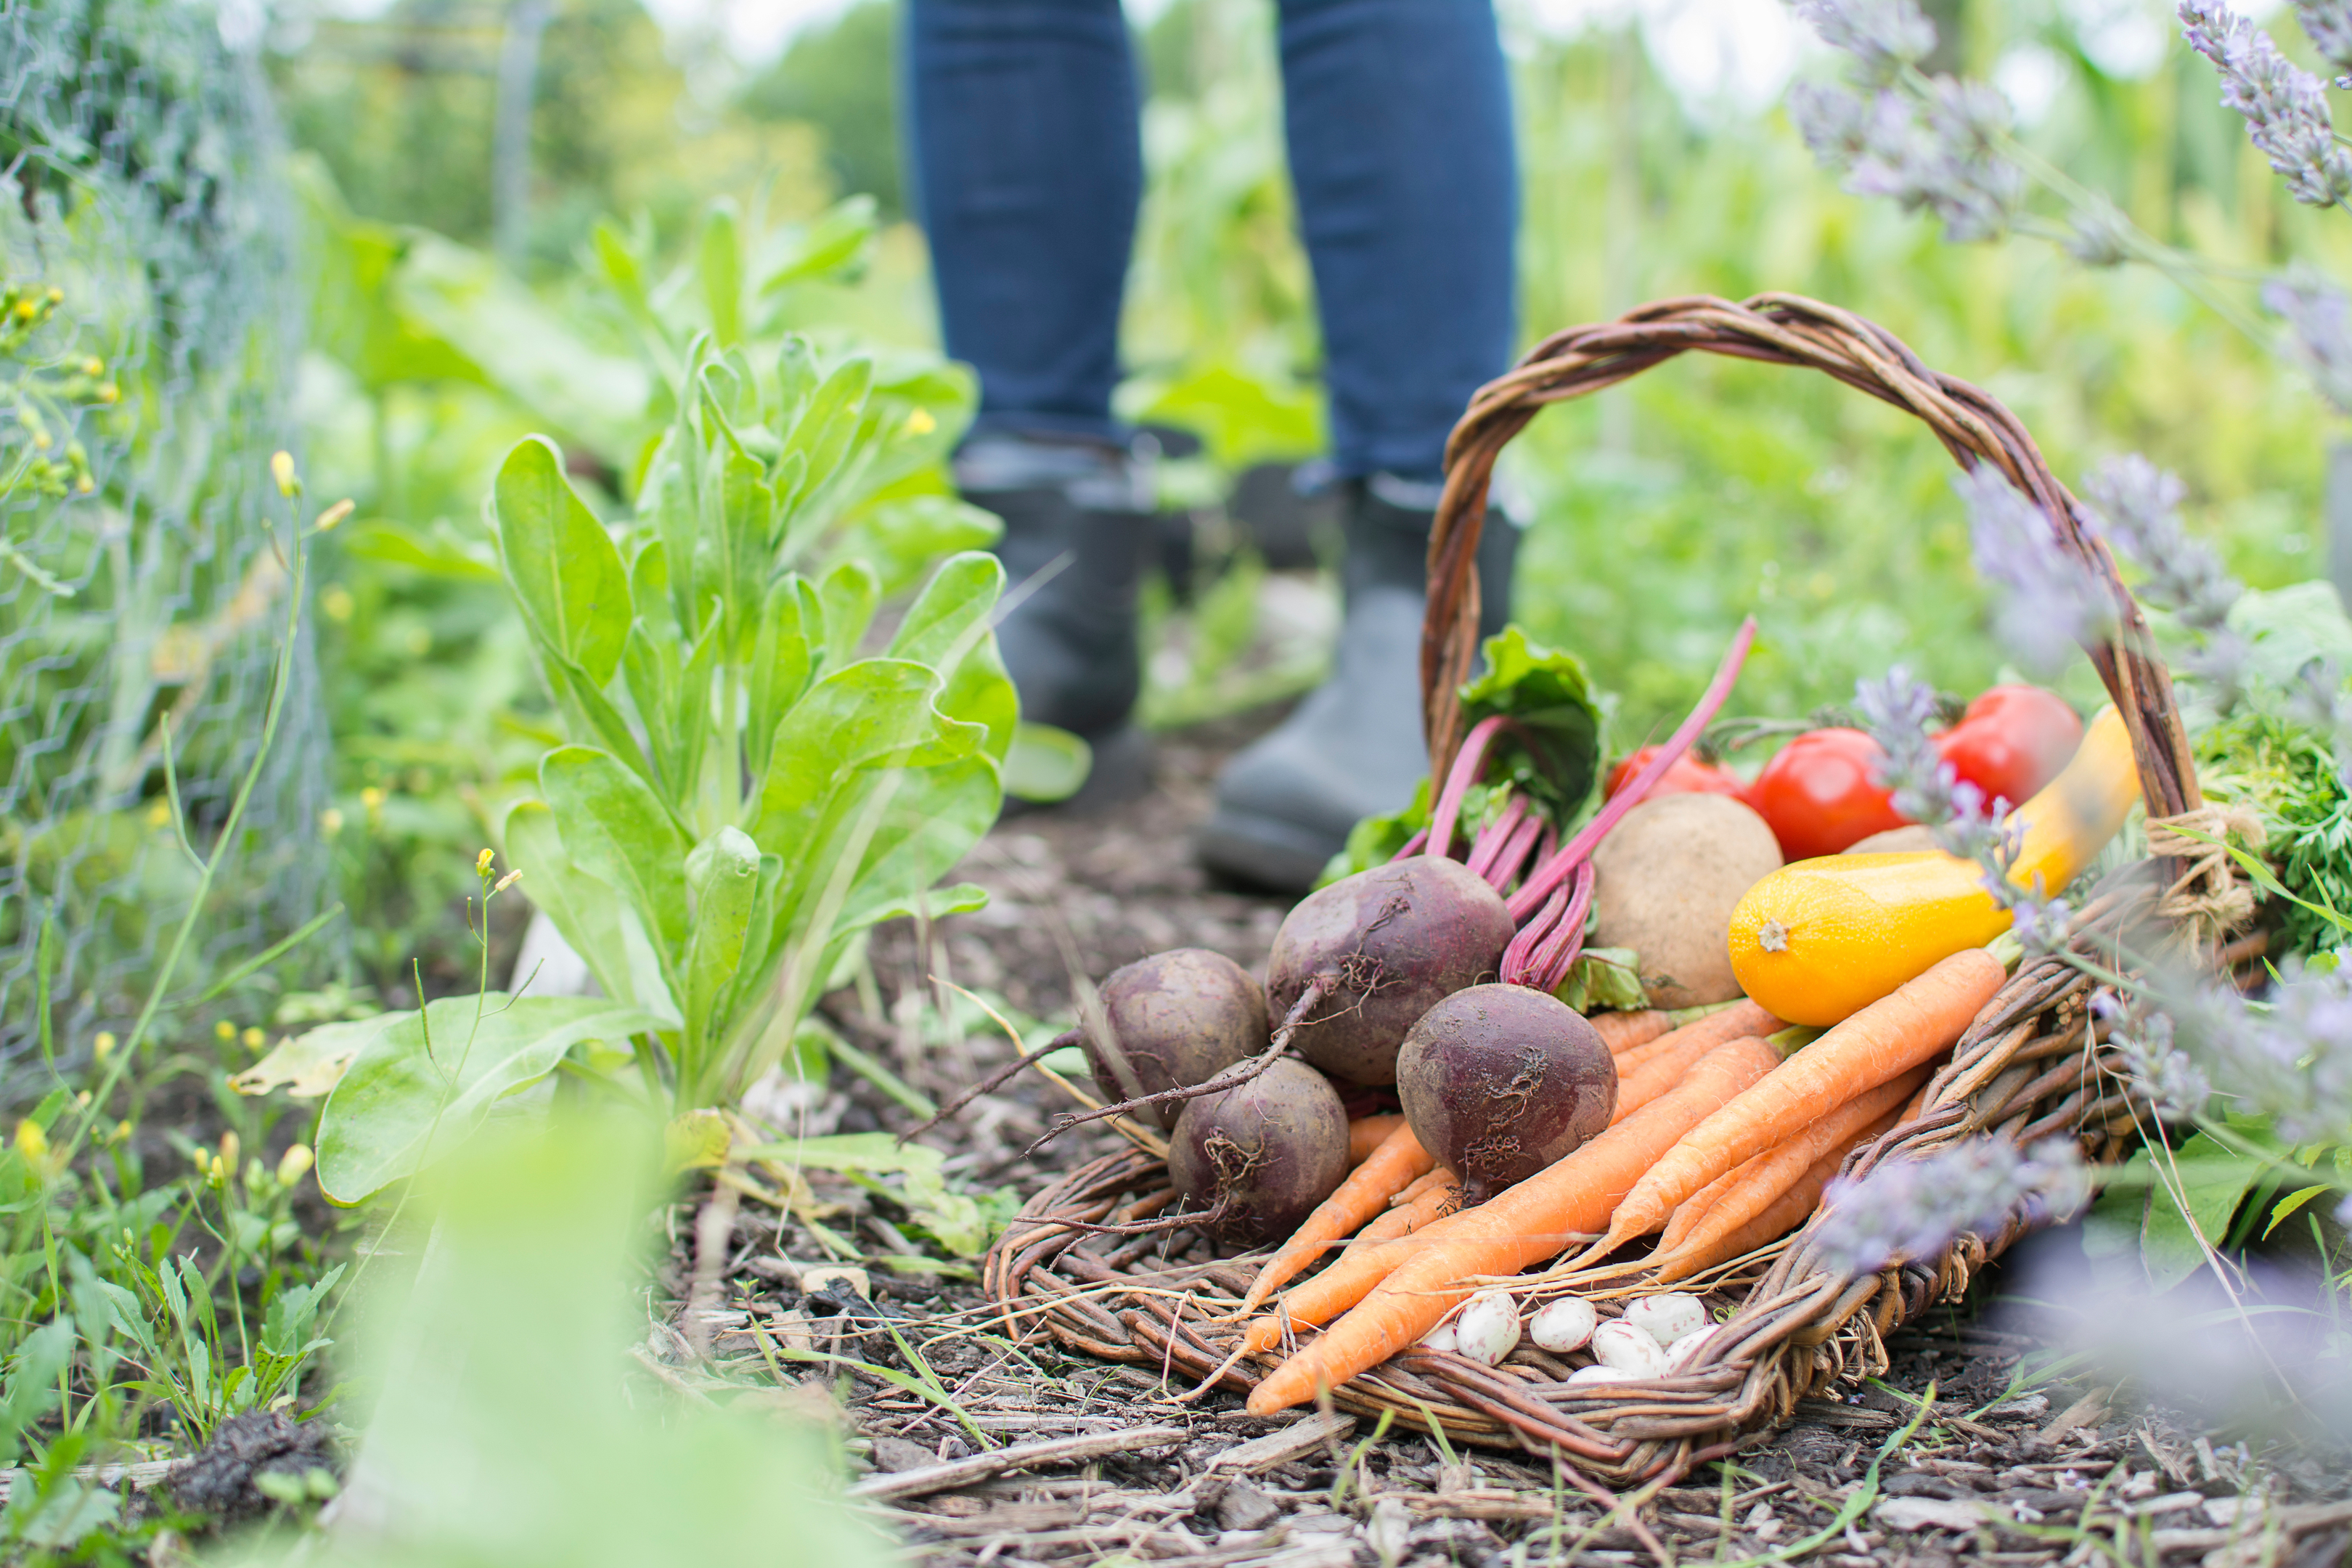 An assortment of freshly picked organic vegetables in a trug basket on an idyllic English allotment with person wearing boots in background.